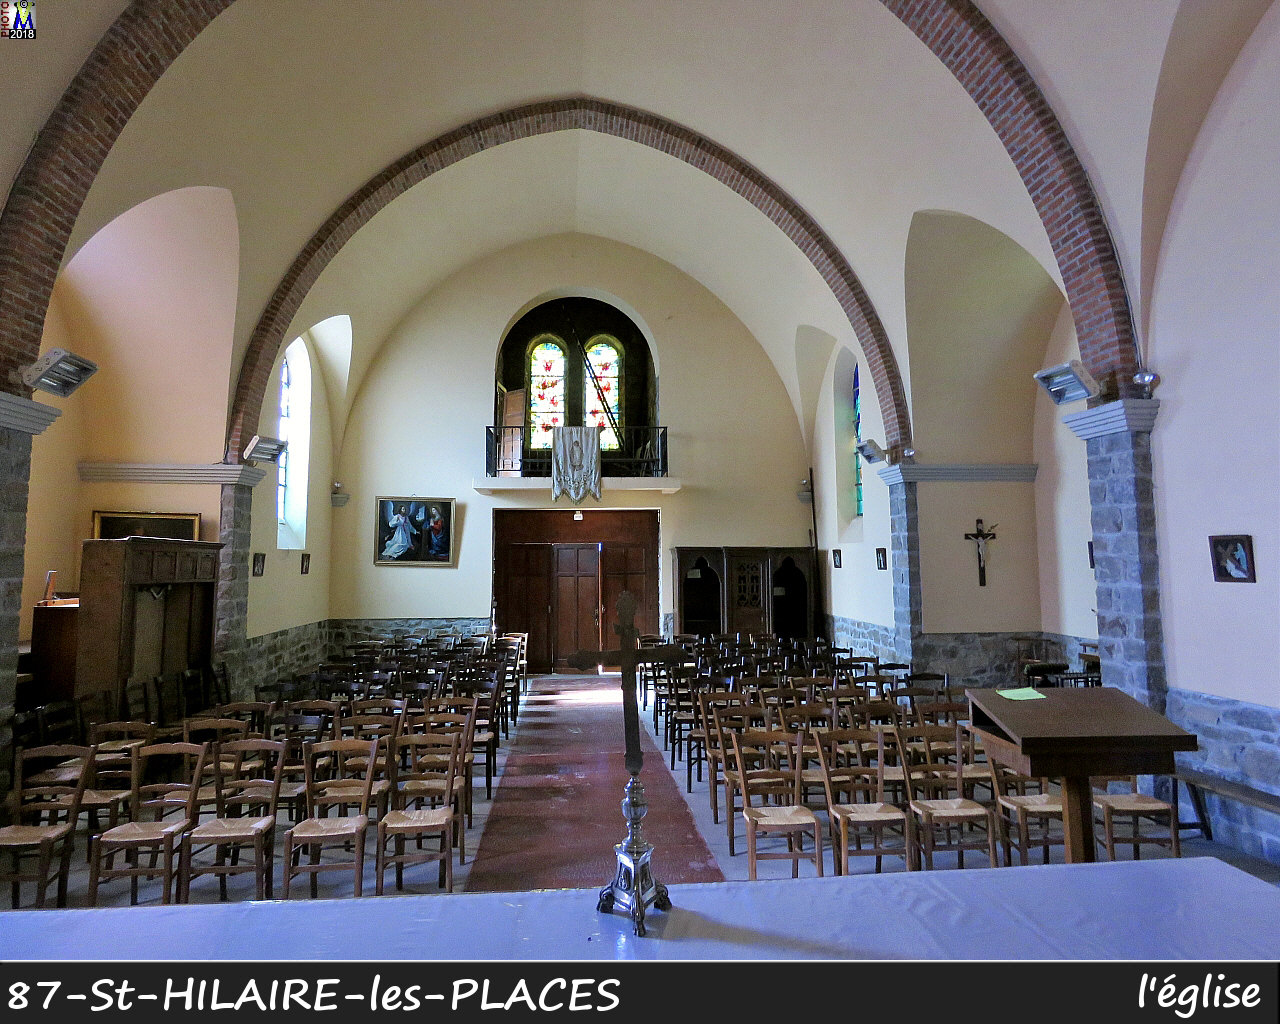 87StHILAIRE-PLACES_eglise_1102.jpg